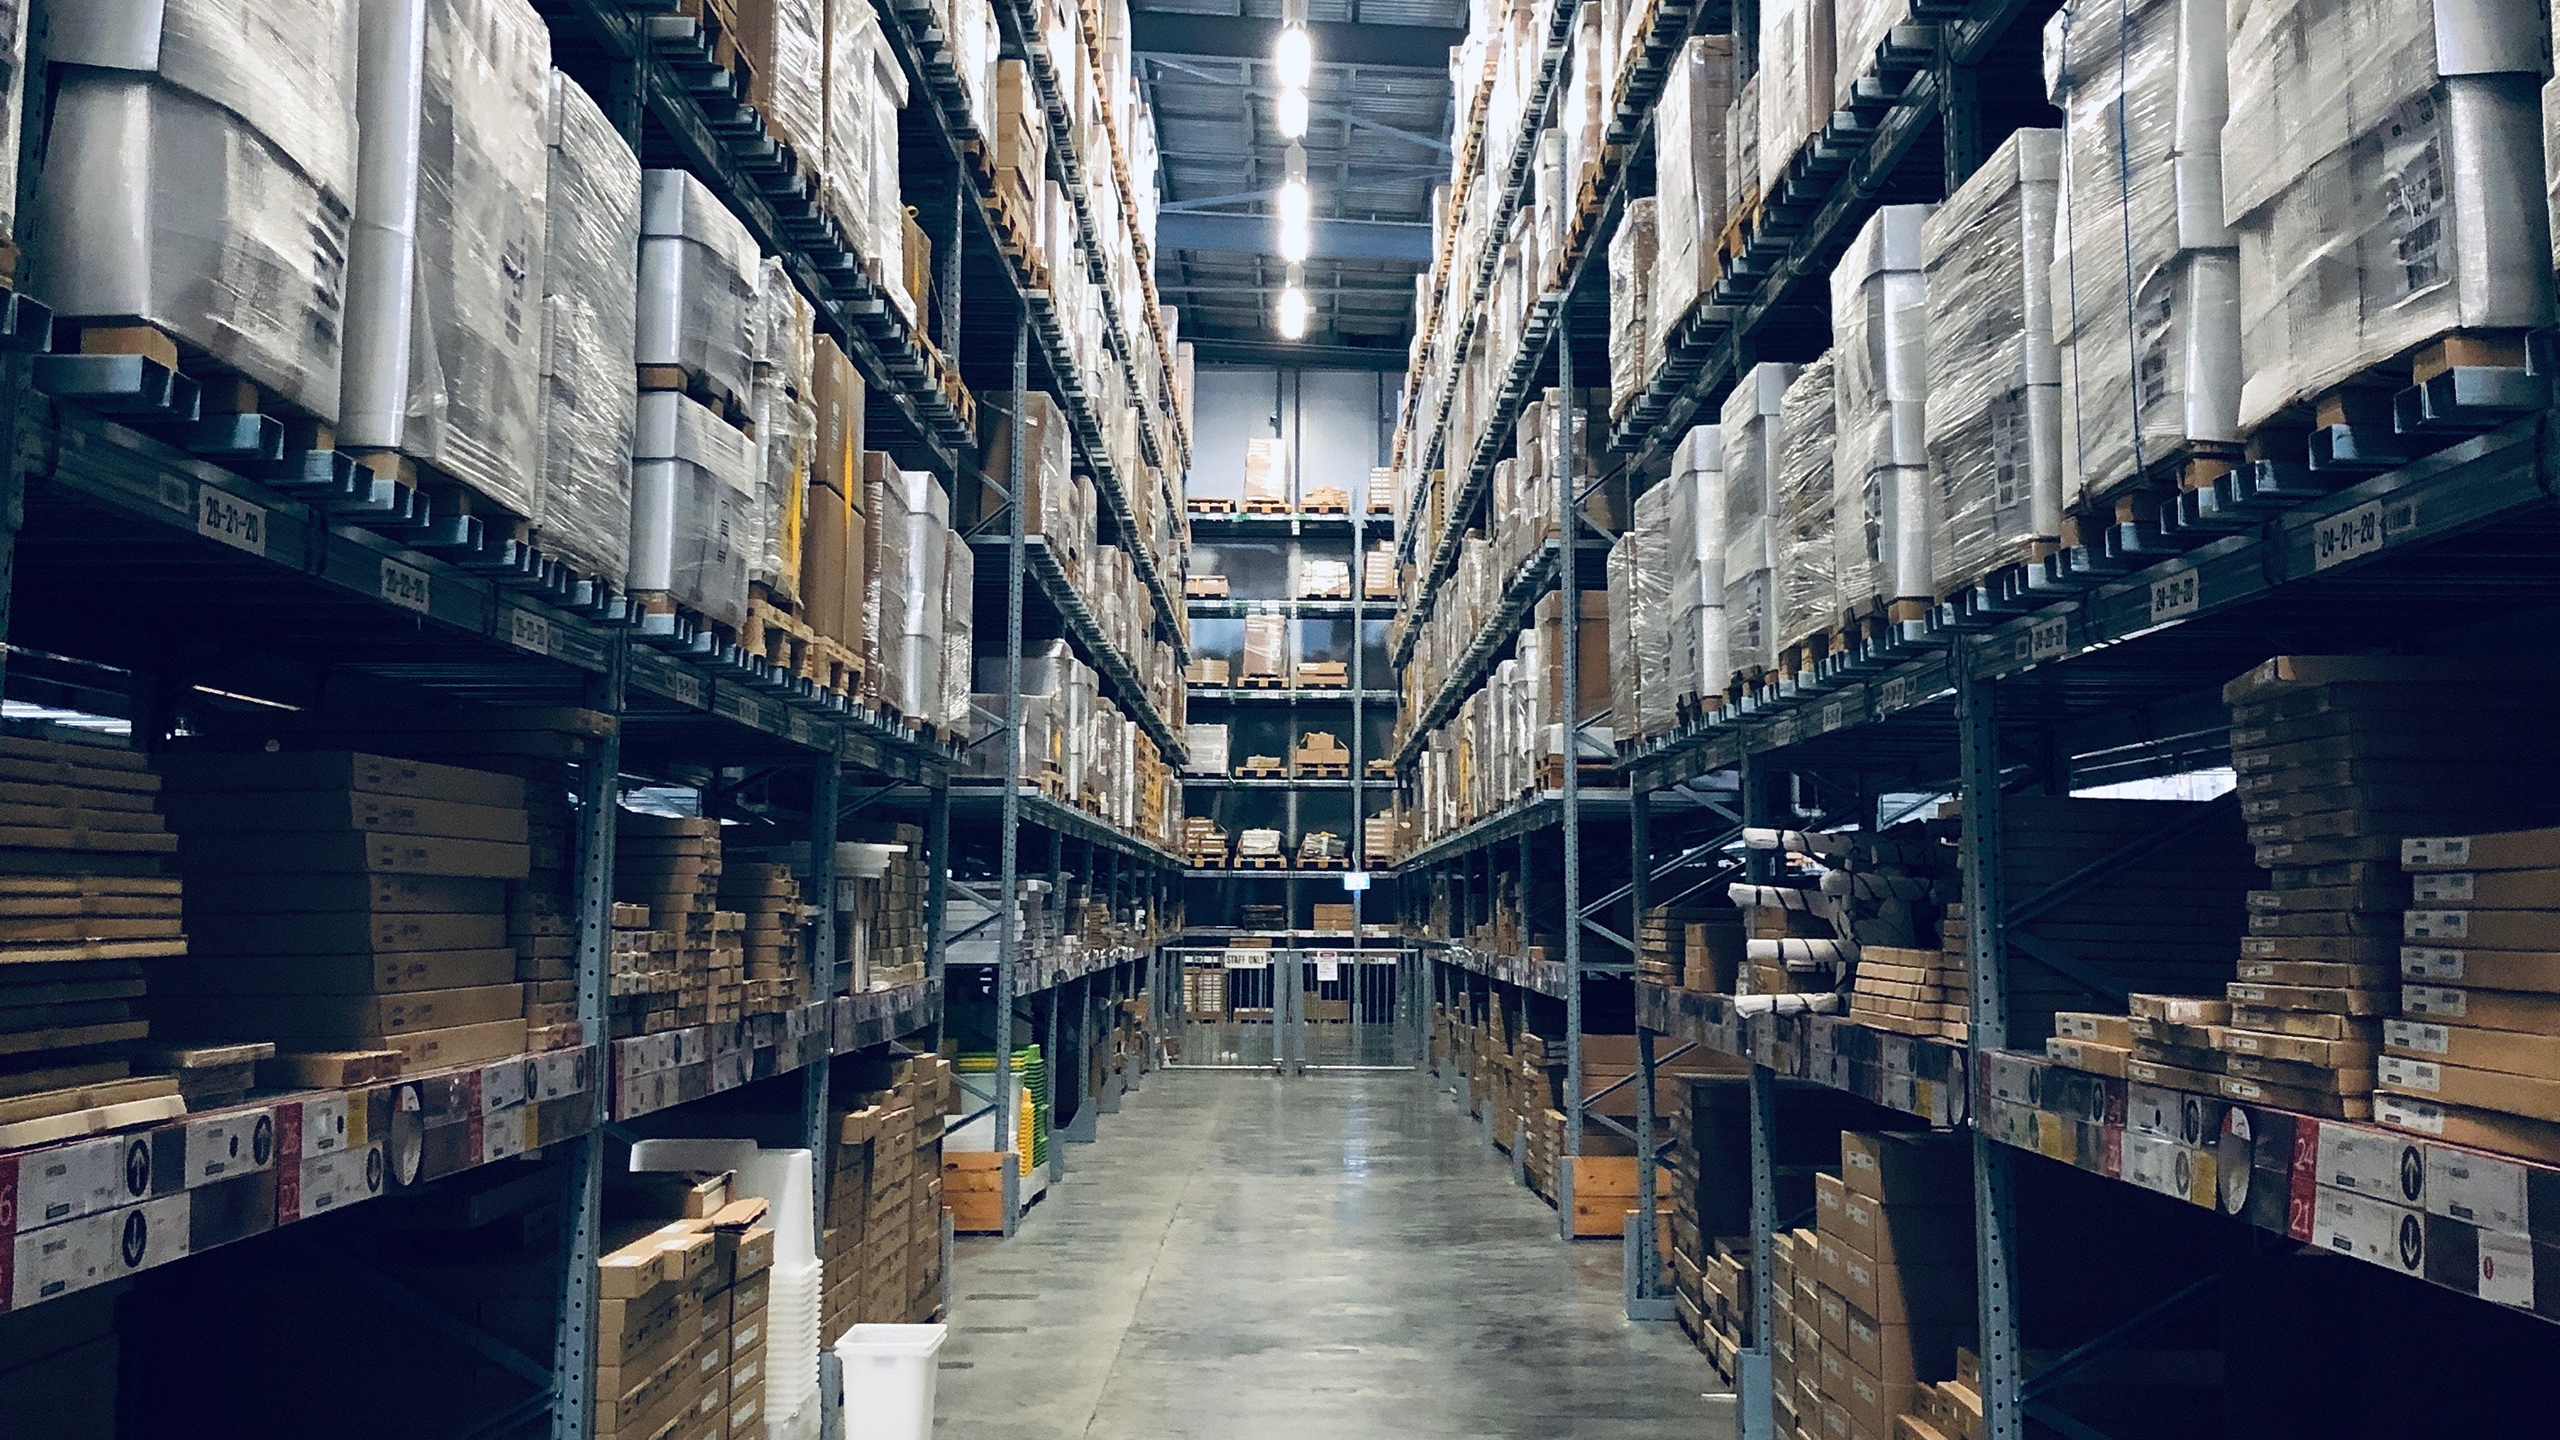 Both e-commerce and stationary retailers are supplied from large central warehouses.